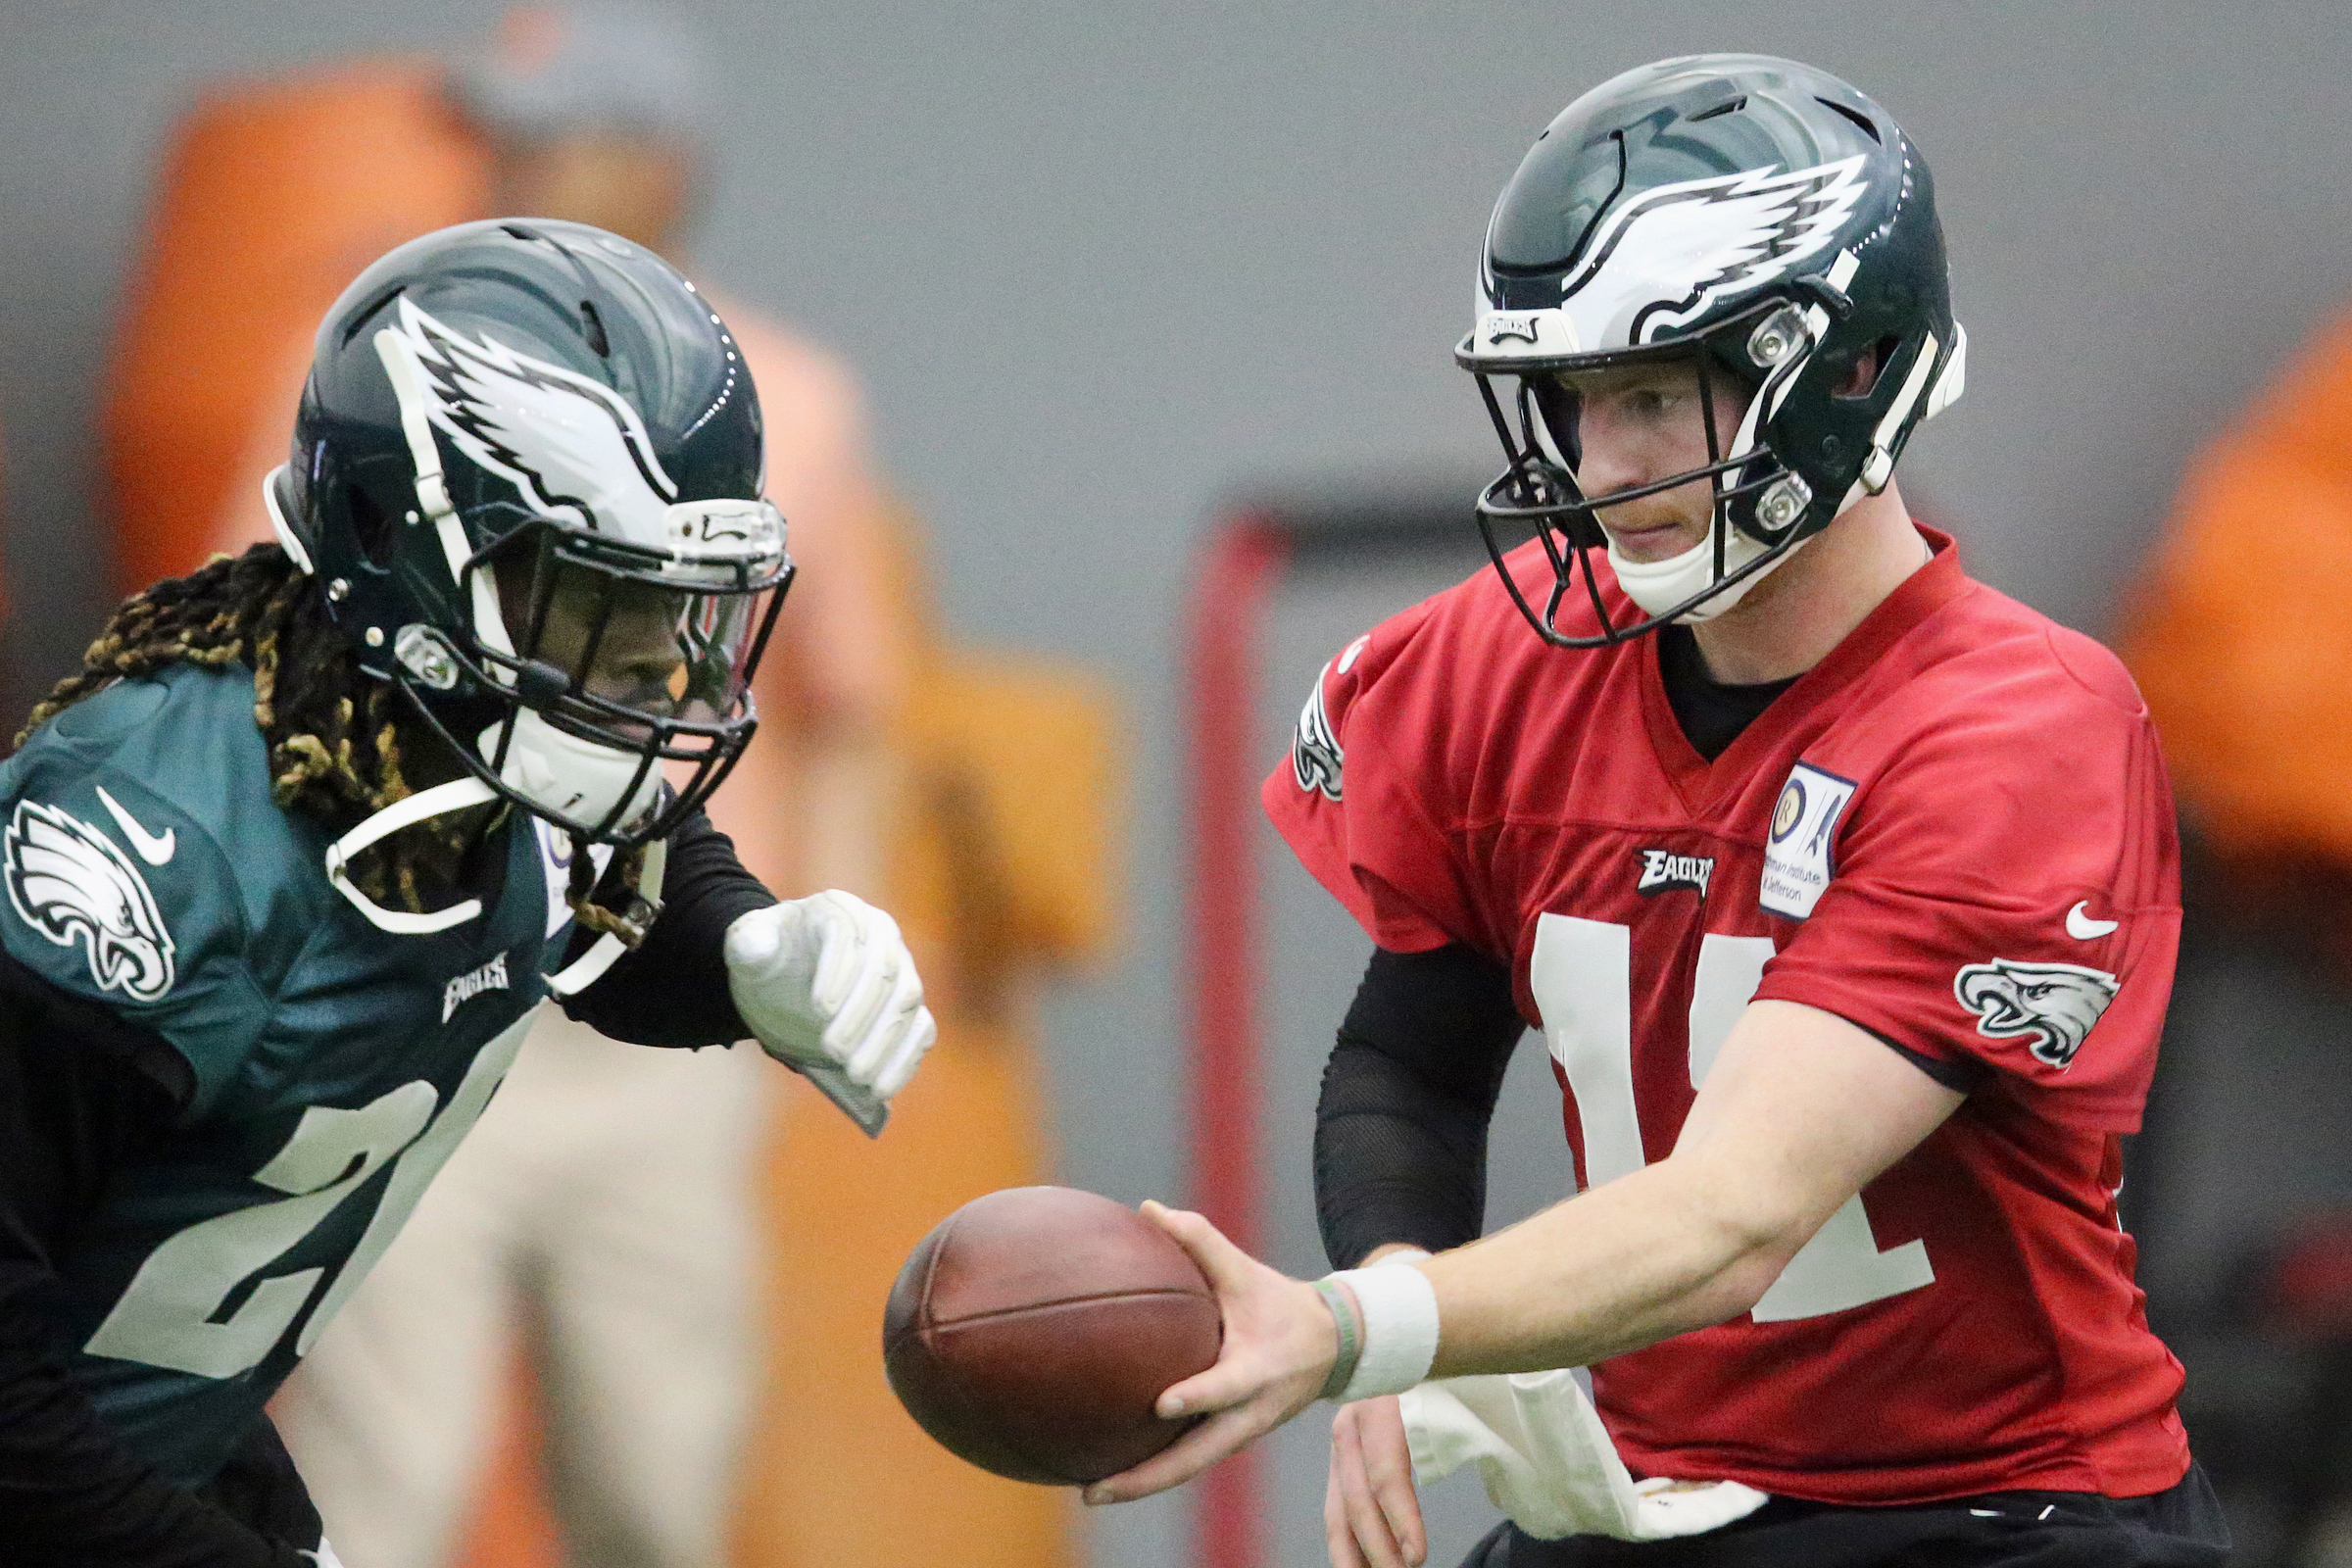 Both Carson Wentz and Jay Ajayi have had injuries handled oddly by the medical staff.